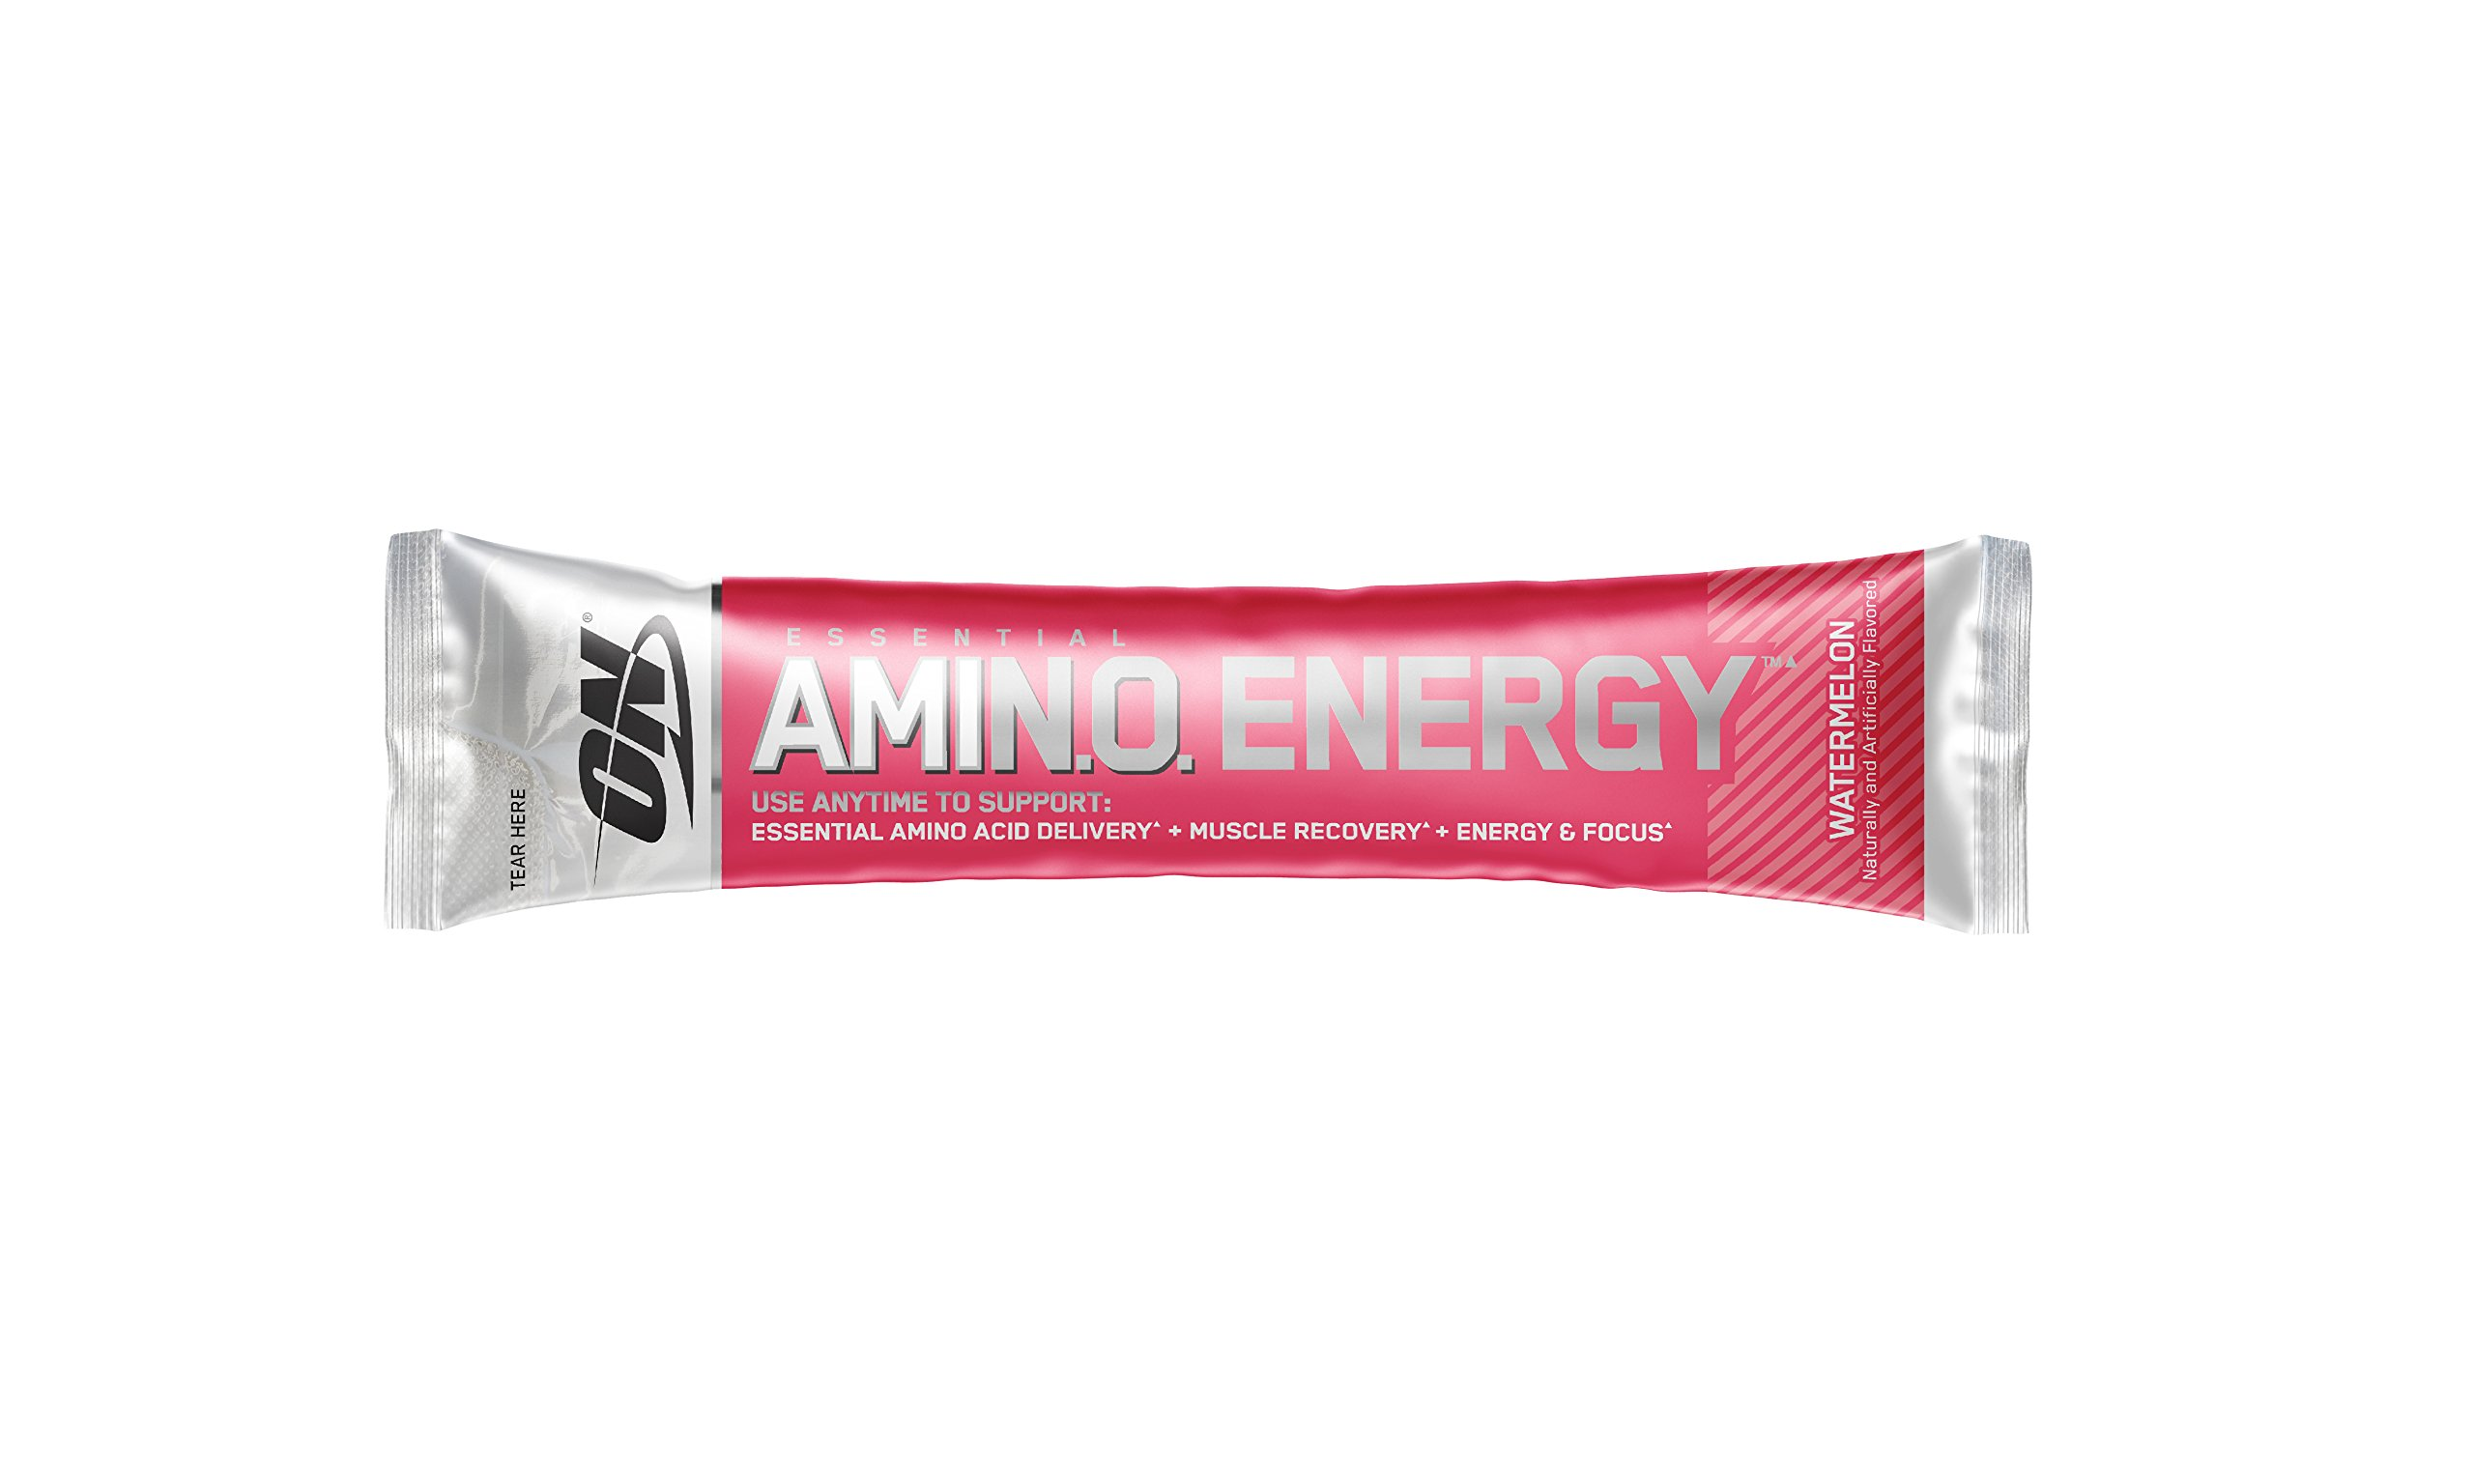 OPTIMUM NUTRITION ESSENTIAL AMINO ENERGY, Green Apple, Preworkout and Essential Amino Acids with Green Tea and Green Coffee Extract, 65 Servings